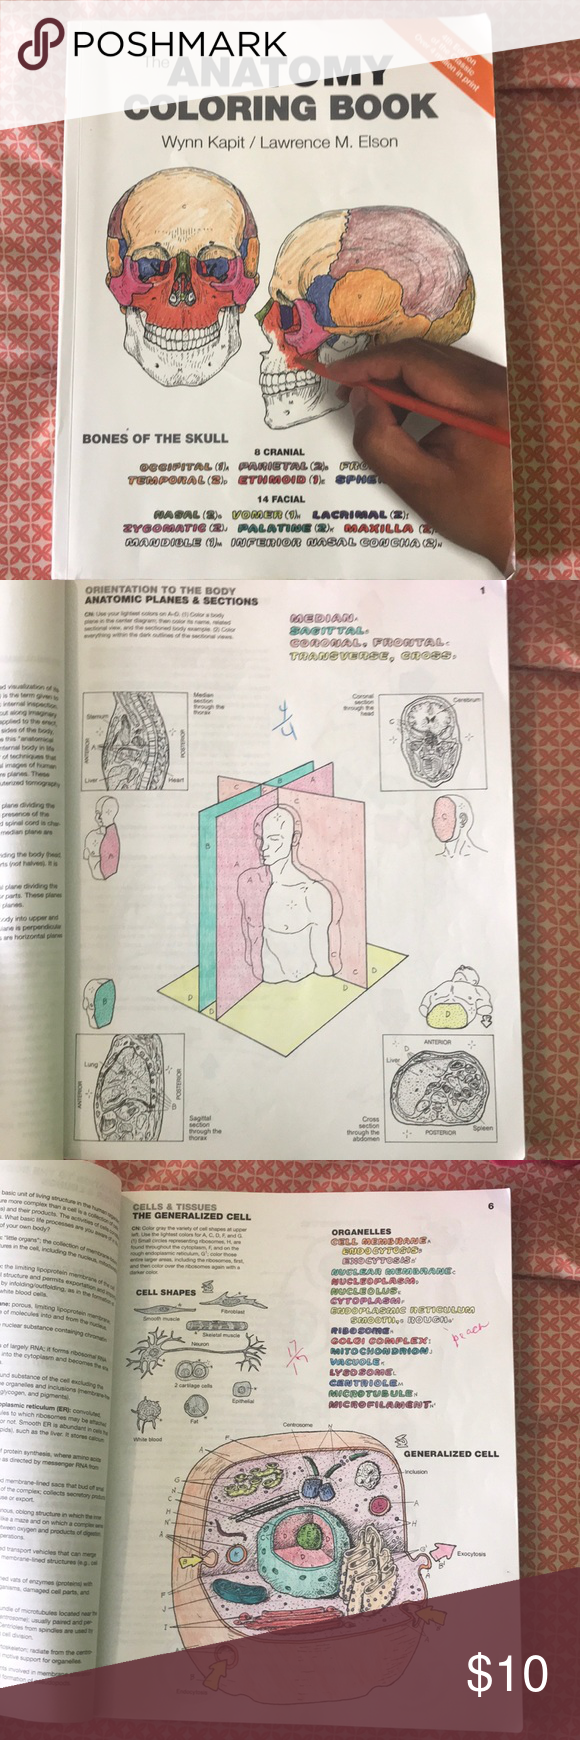 The Anatomy Coloring Book 4th Edition The Anatomy Coloring Book 4th Edition A Coloring Book With Anything Anantomy Coloring Books Anatomy Coloring Book Books